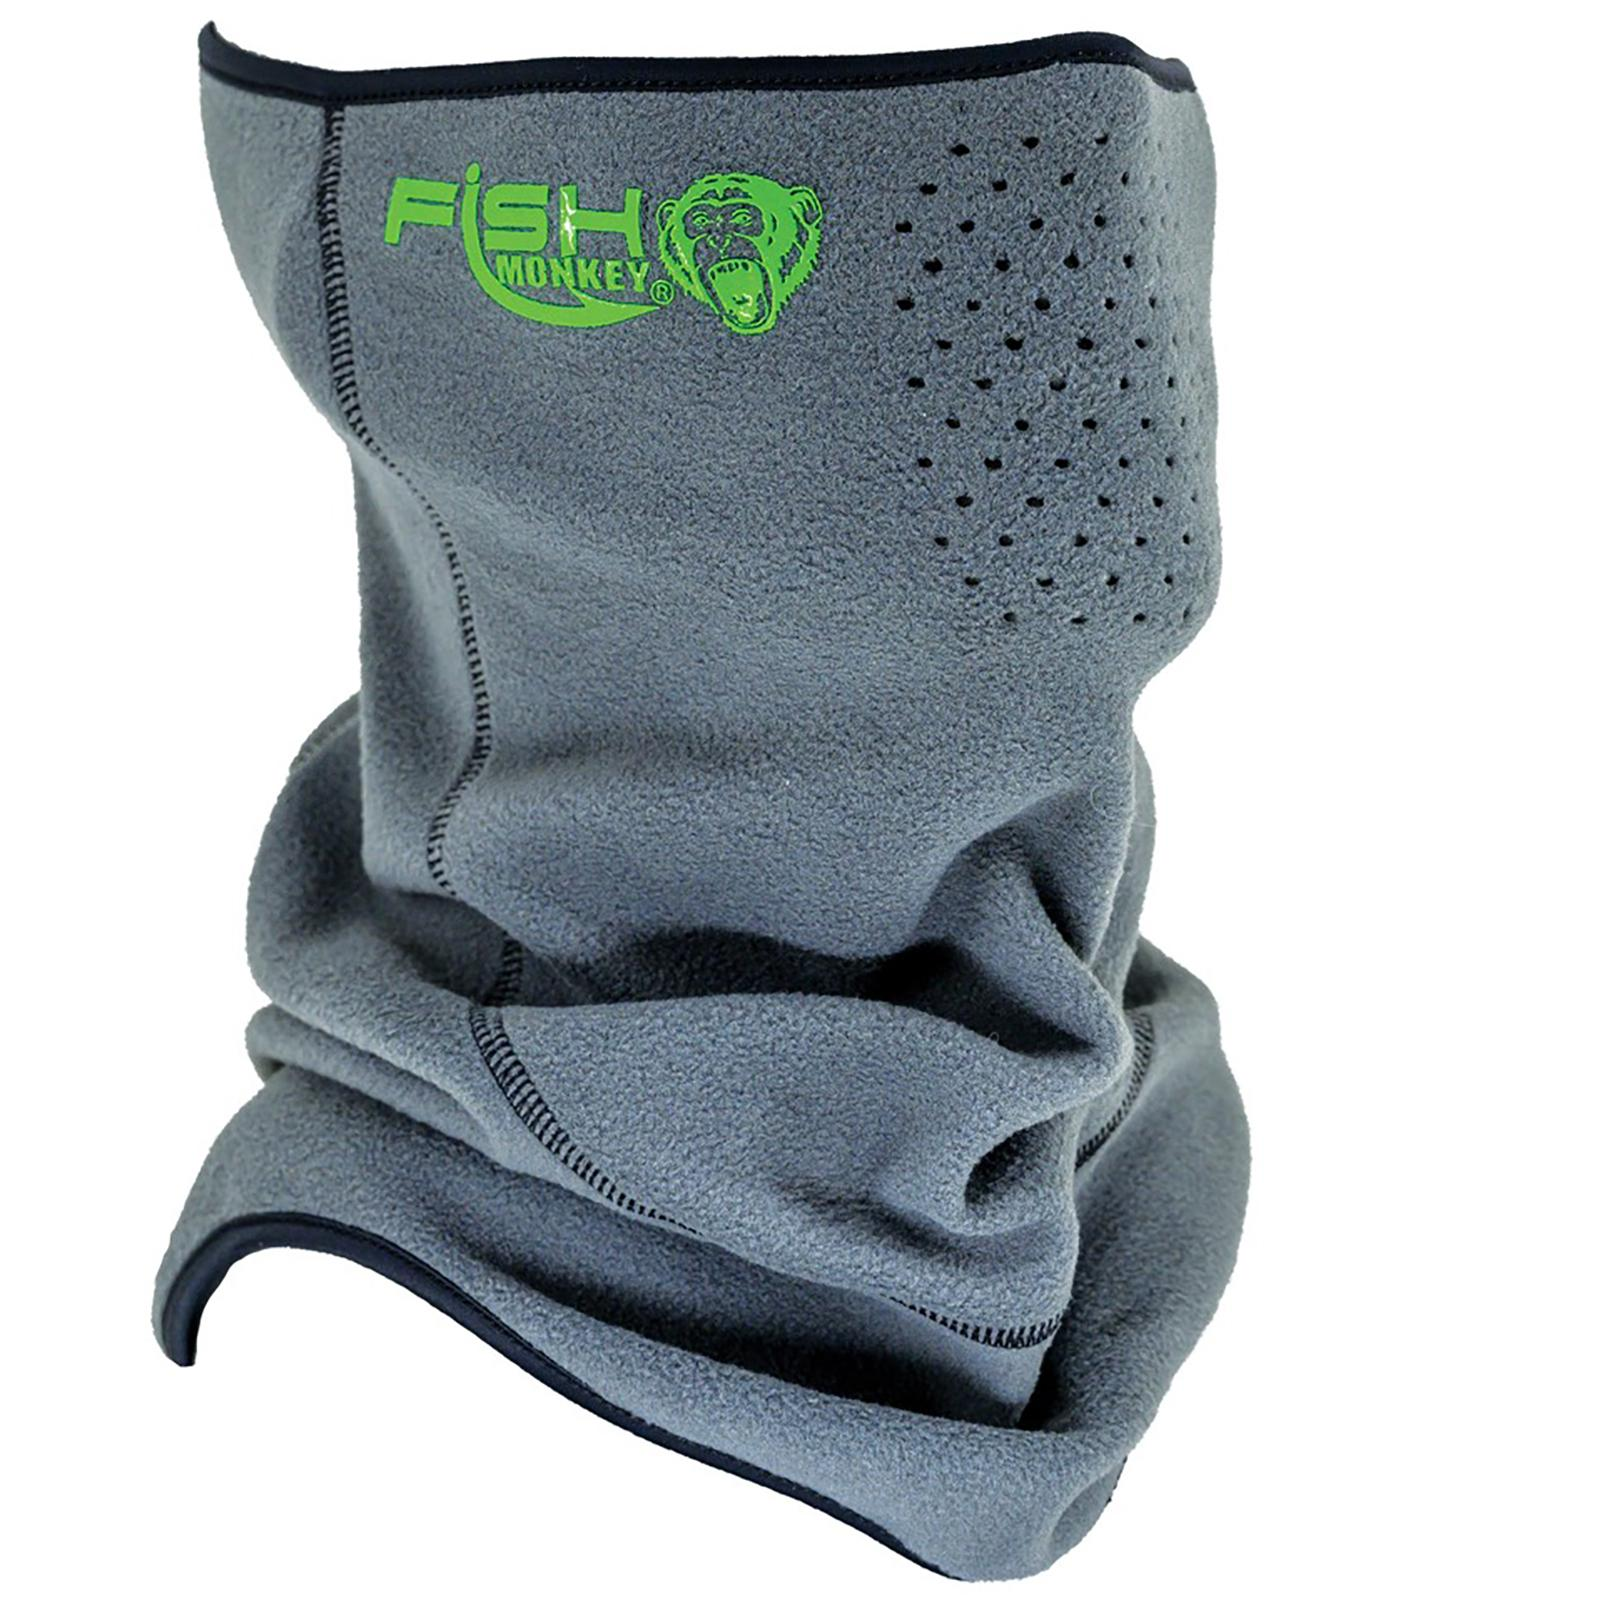 Fish Monkey Men's Yeti Fleece Face Guard